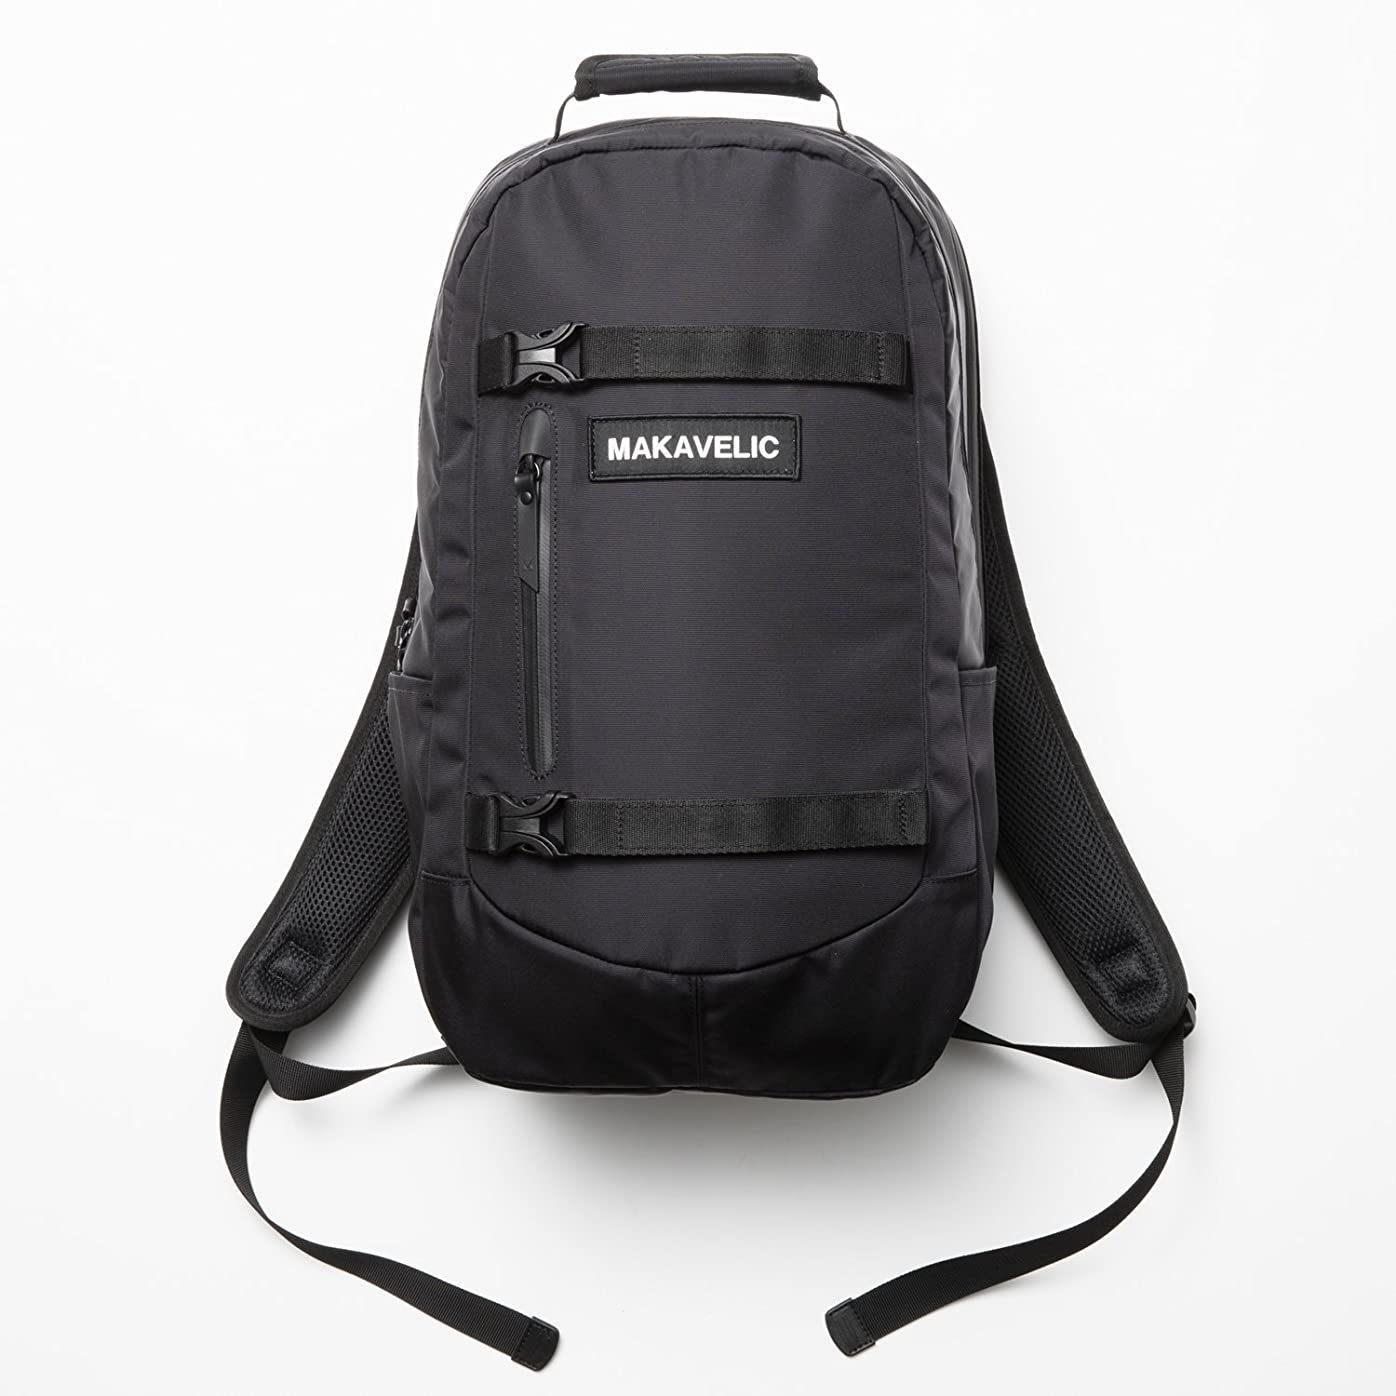 つぼみカバー真鍮[マキャベリック] MAKAVELIC TRUCKS WEATHER PROTECTION DAYPACK 3107-10118 (black)